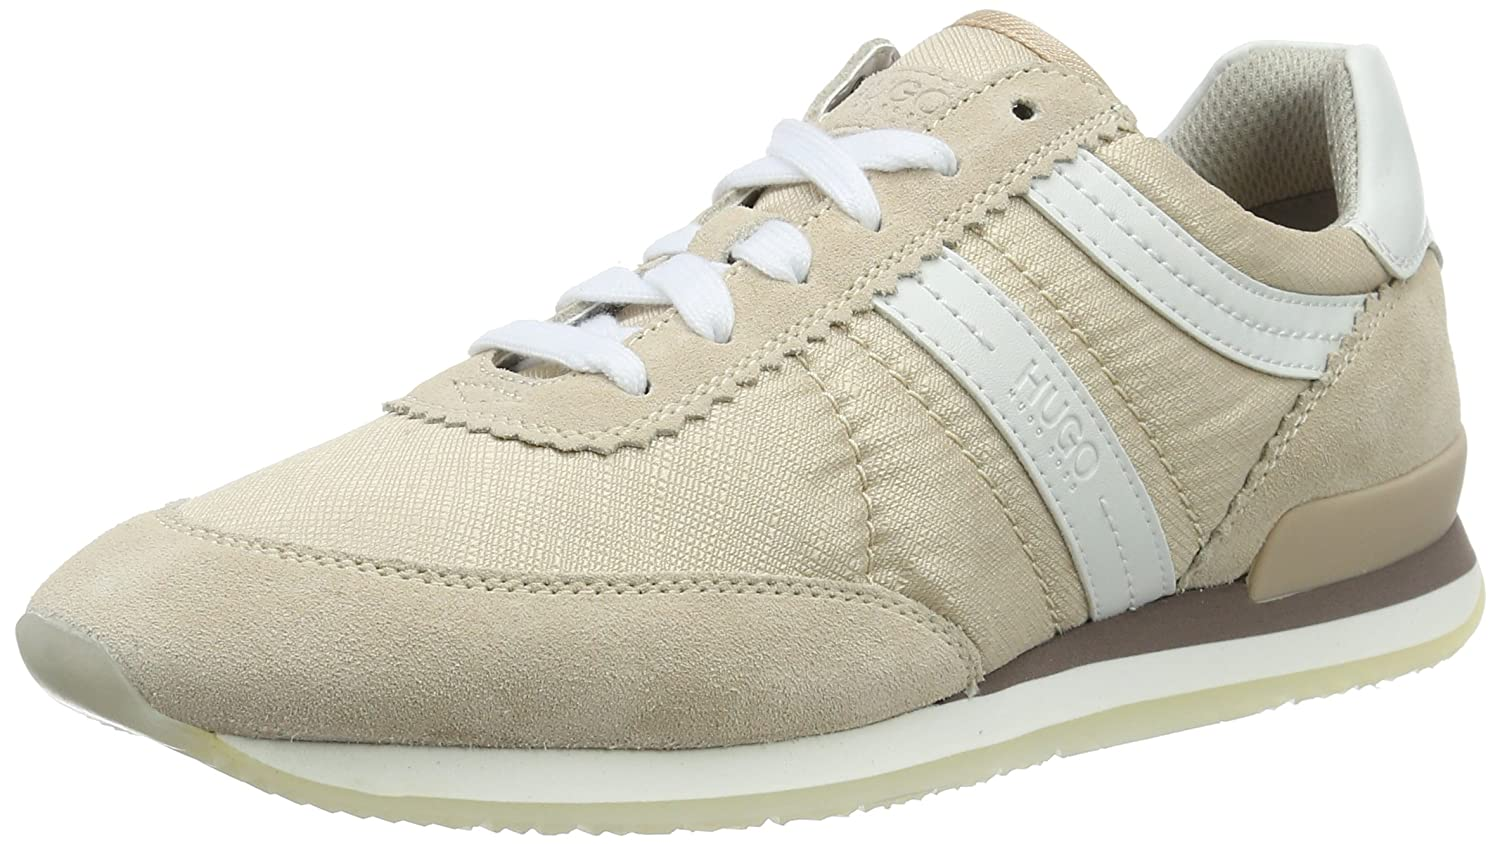 HUGO Adreny amazon-shoes beige Más Barato Coste De Envío V4EaFG